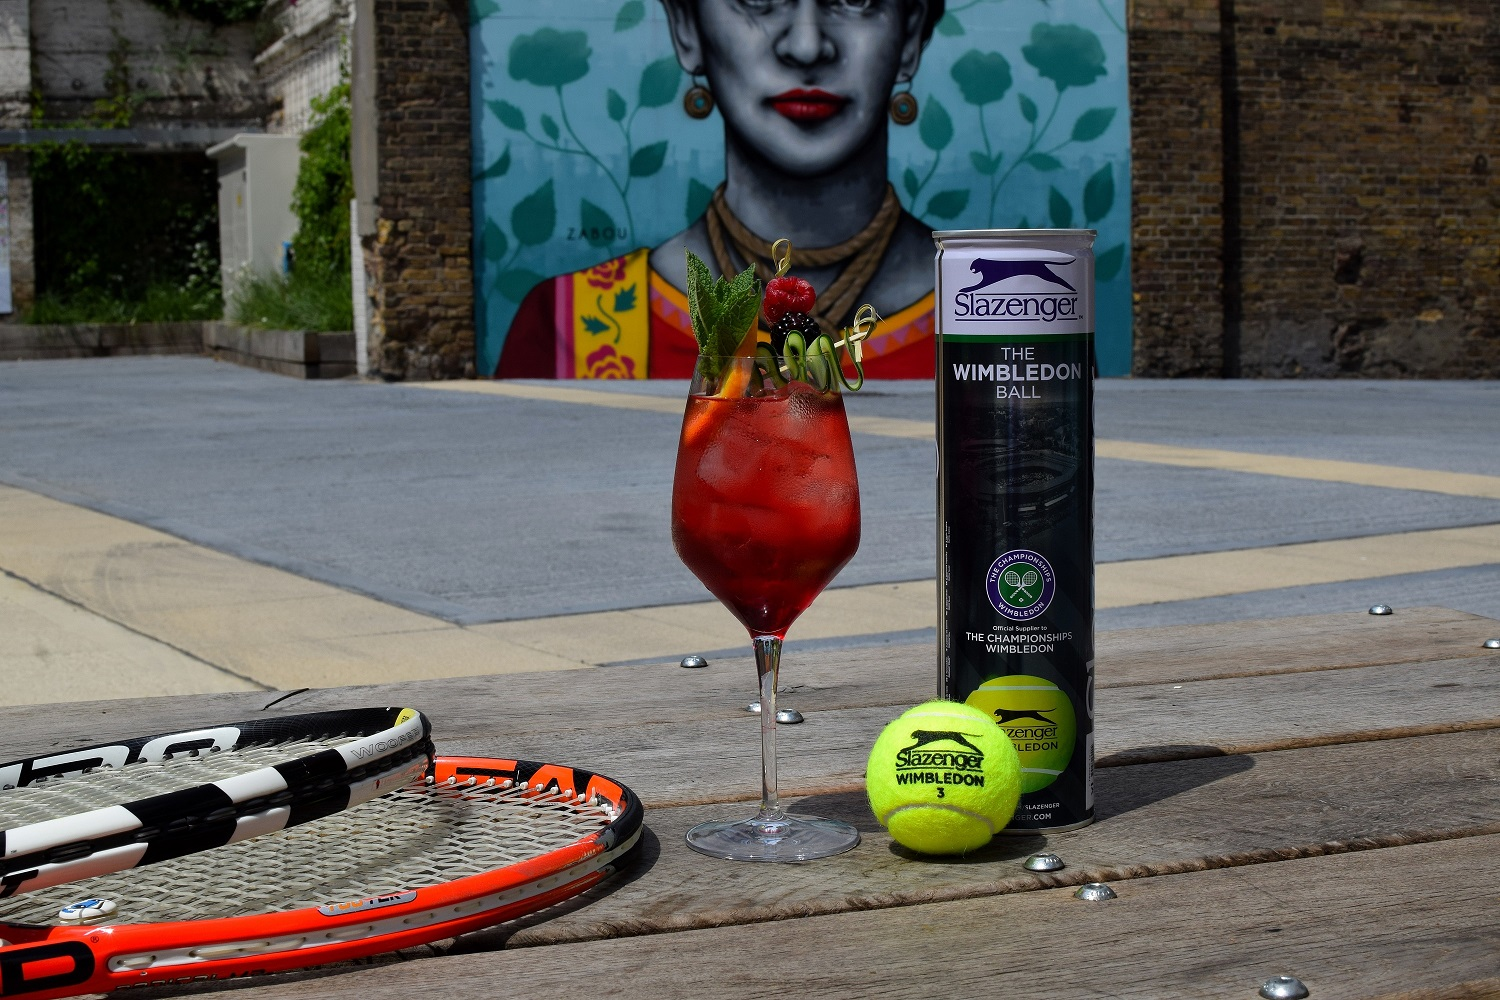 Wimbledon Cocktail and Tennis Rackets and Balls